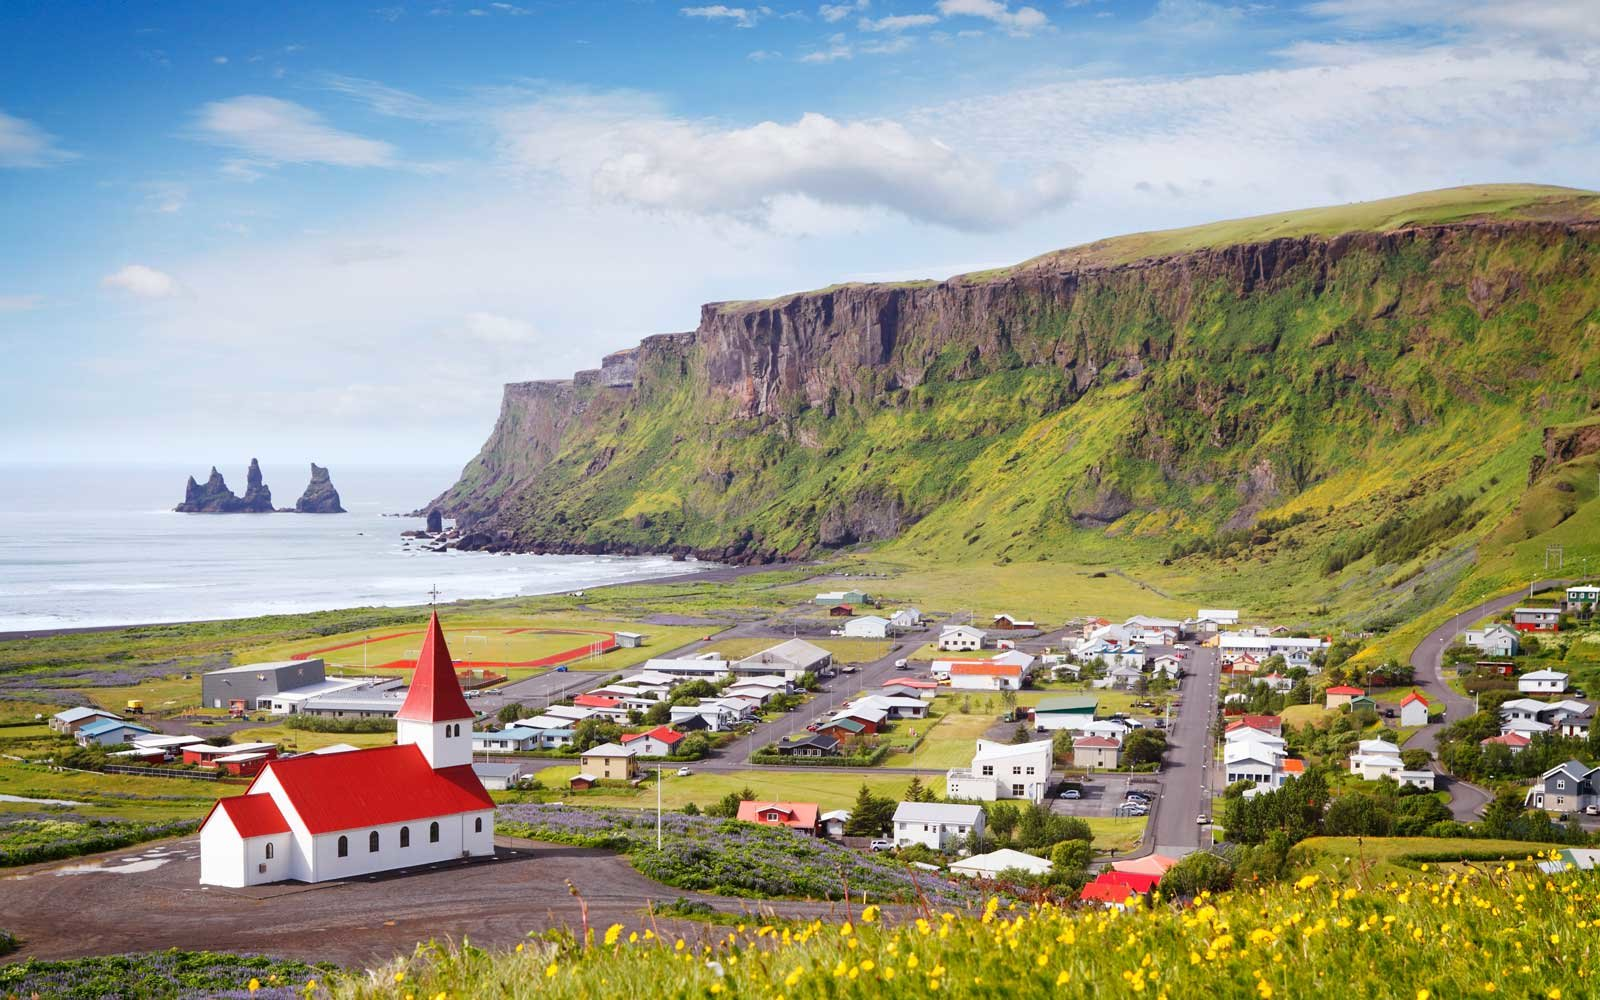 Via town, South Iceland